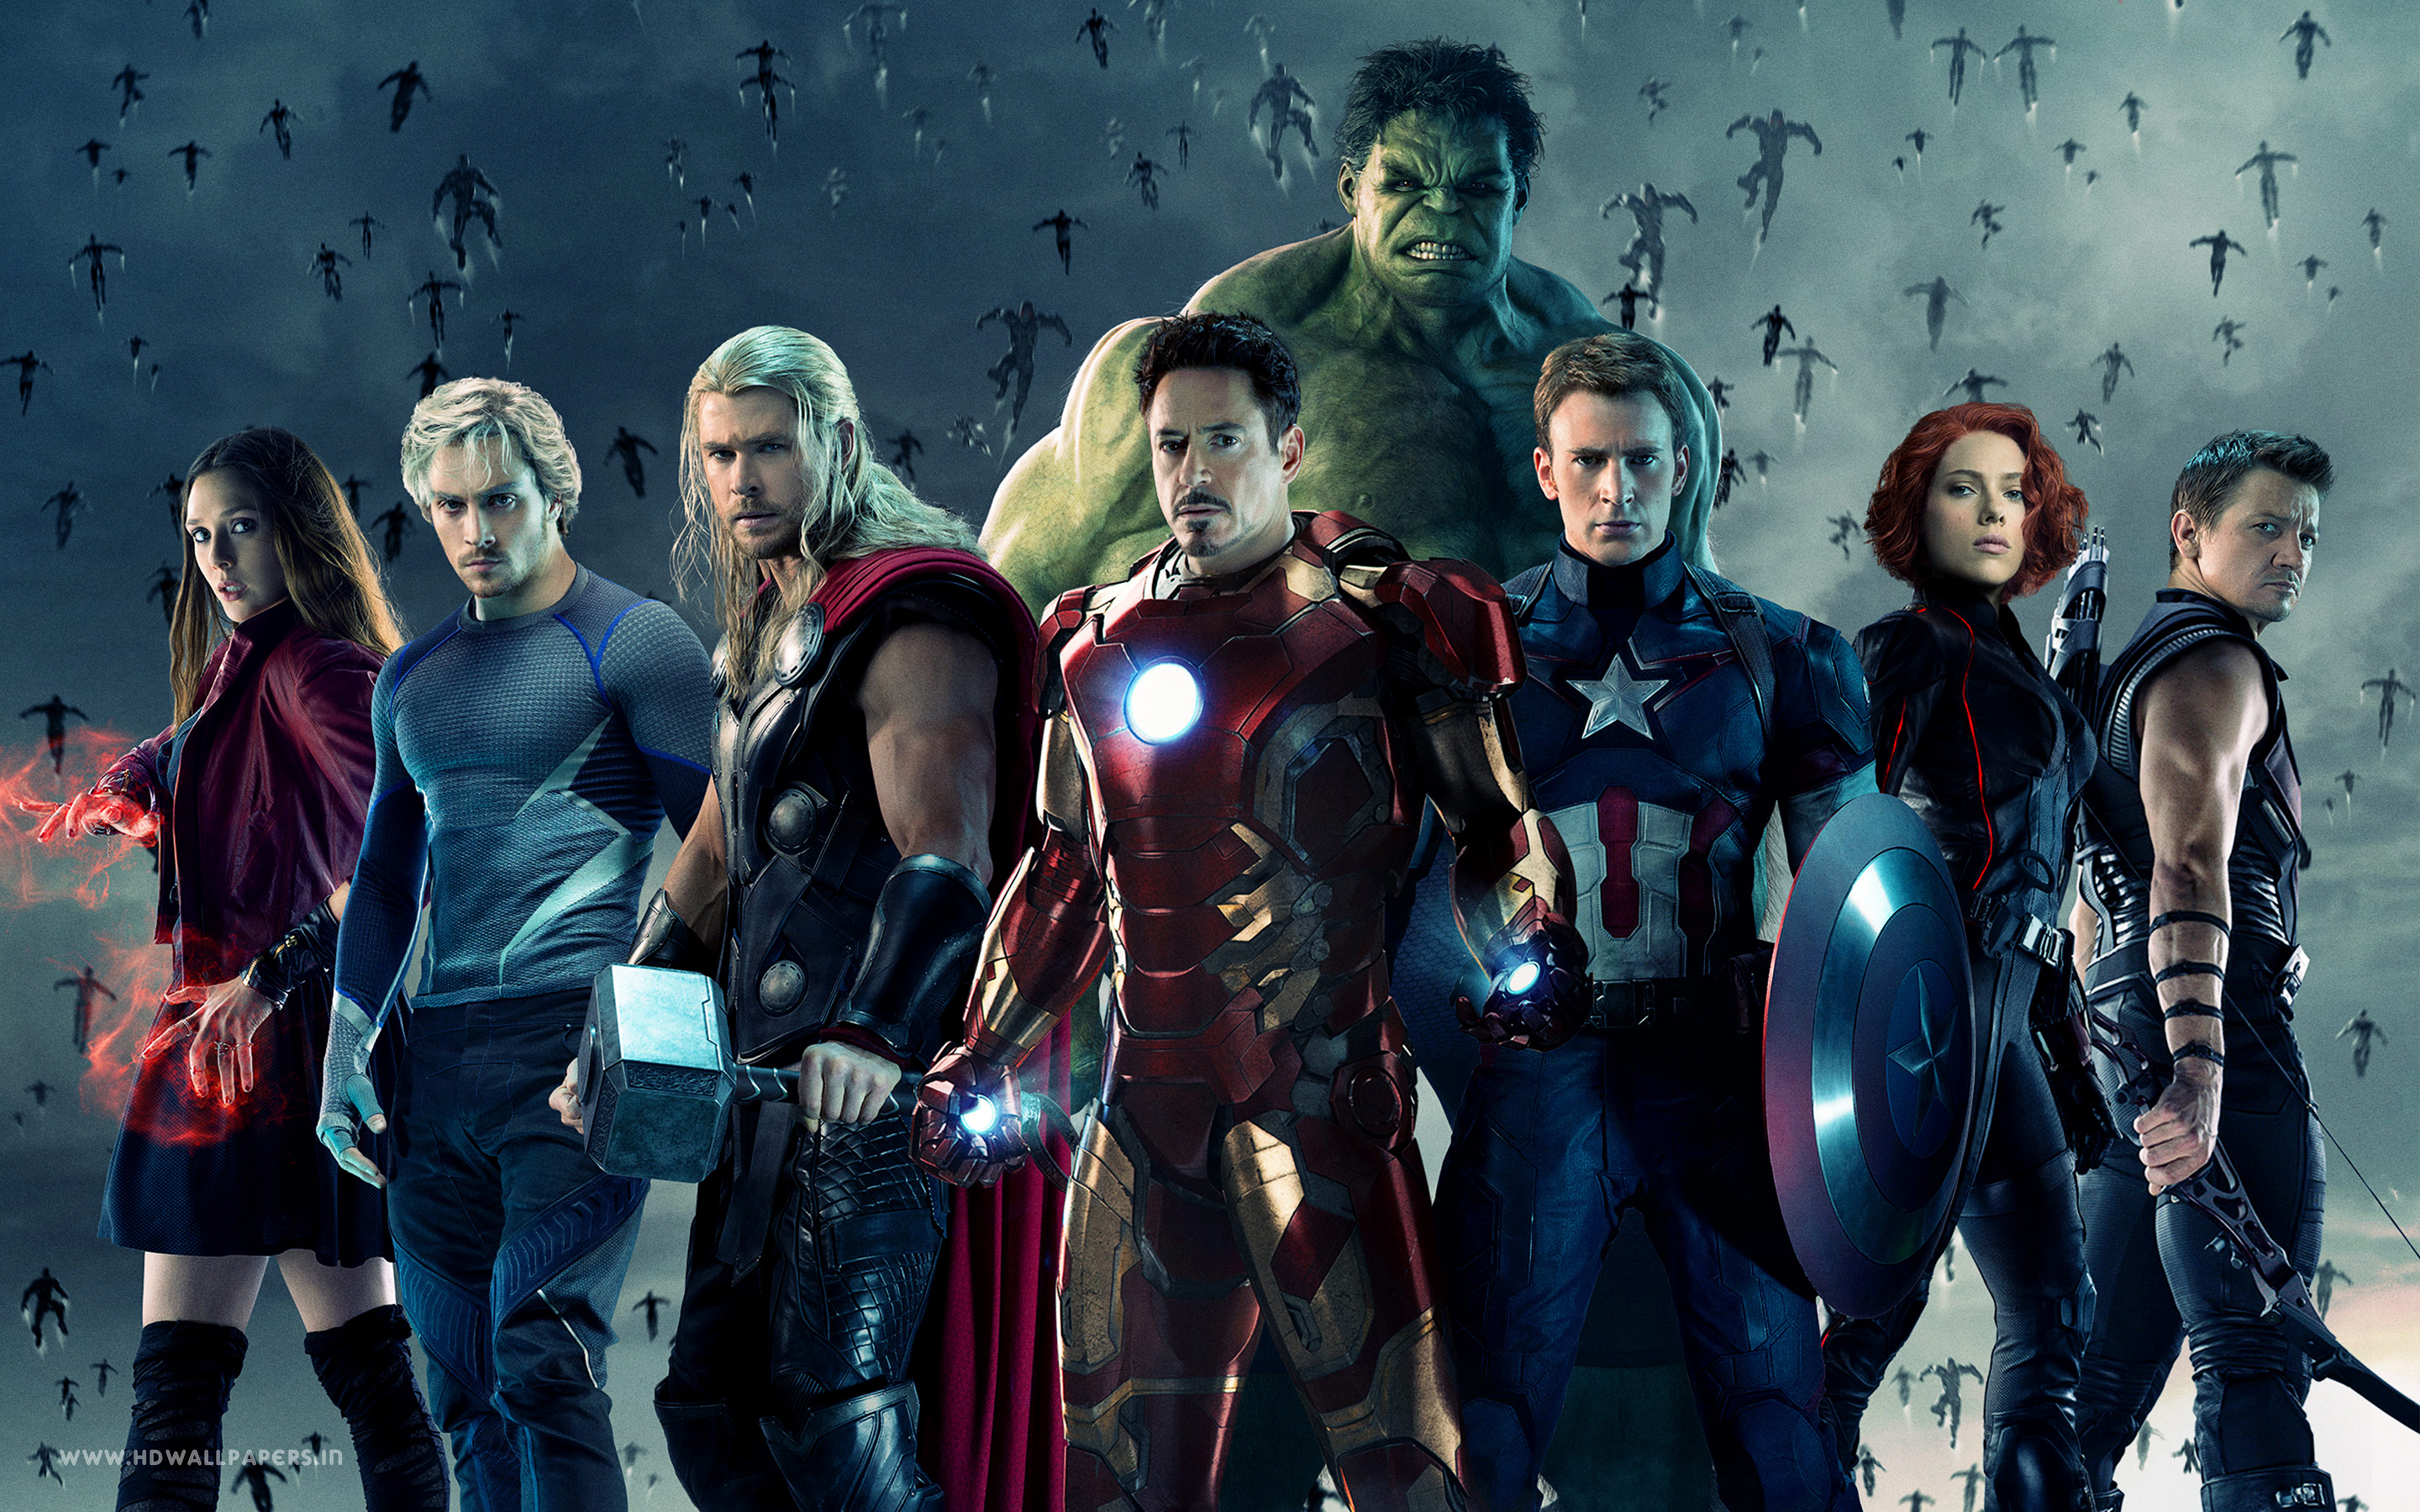 The cast of heroes from Joss Whedon's 'Avengers: Age of Ulton' (2015)